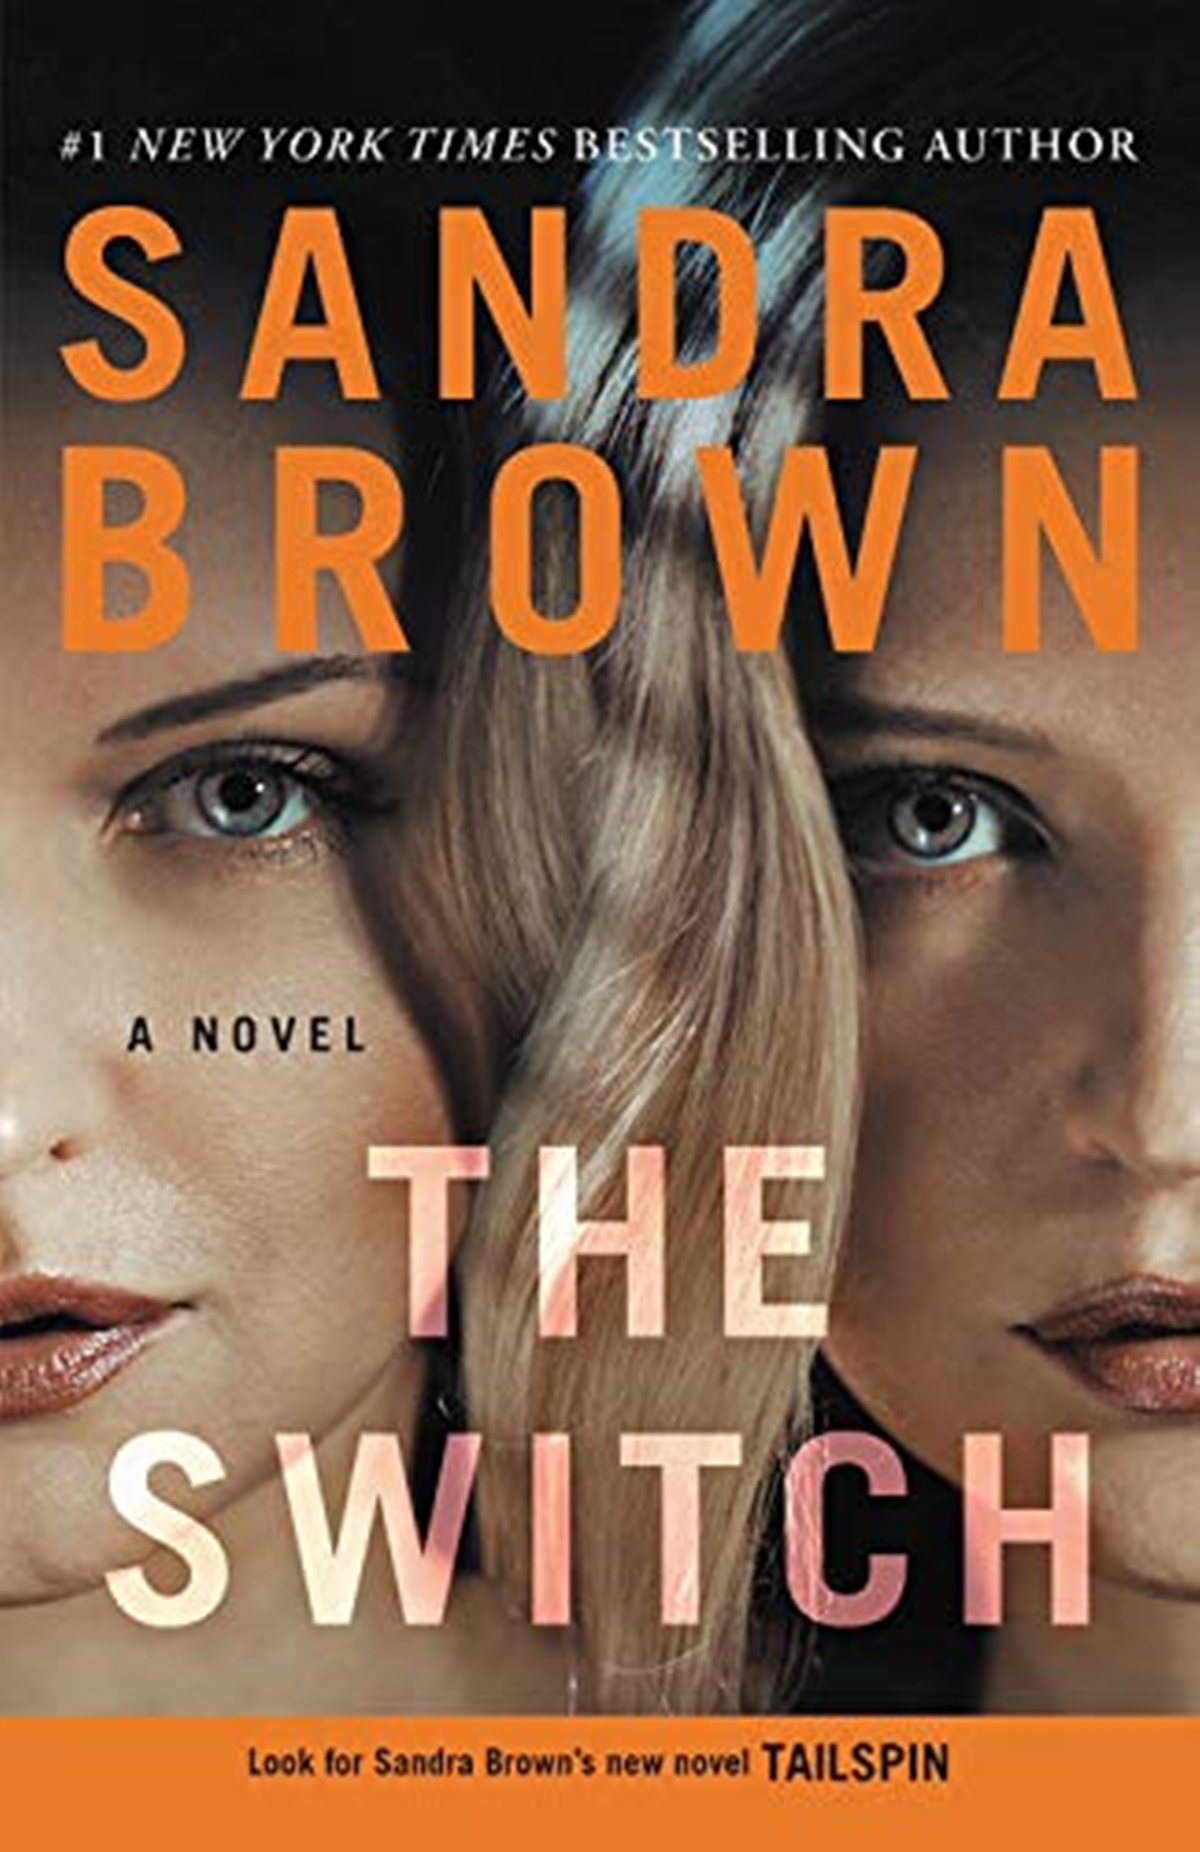 Sandra Brown Books, cover of The Switch by Sandra Brown, books